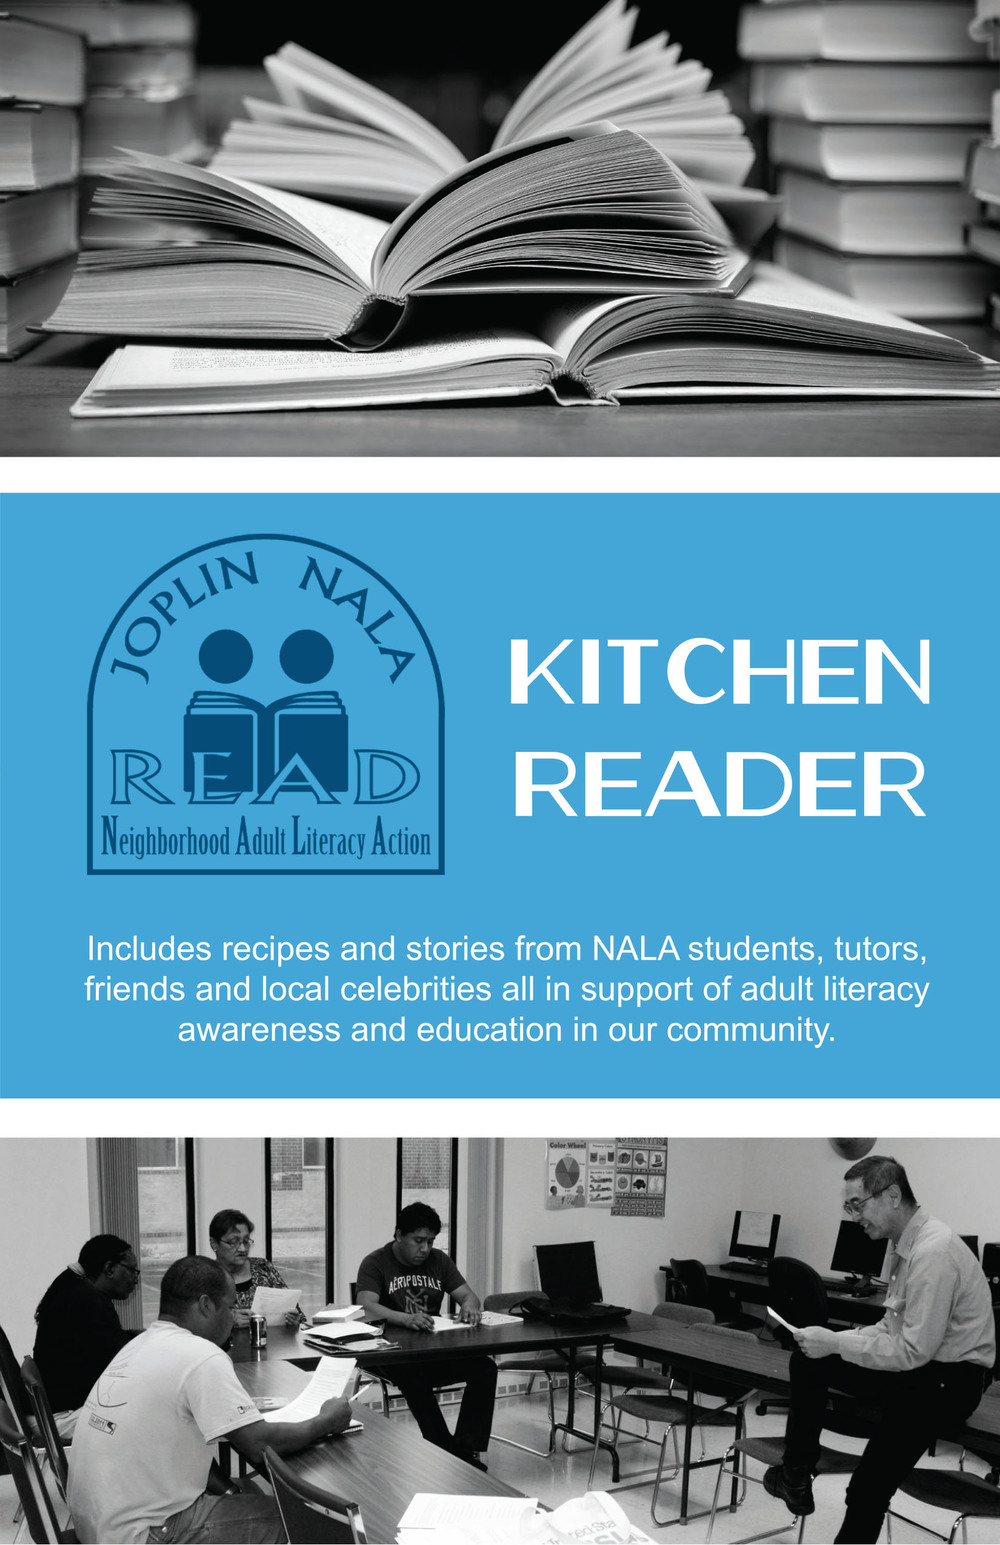 2015 Joplin NALA Kitchen Reader